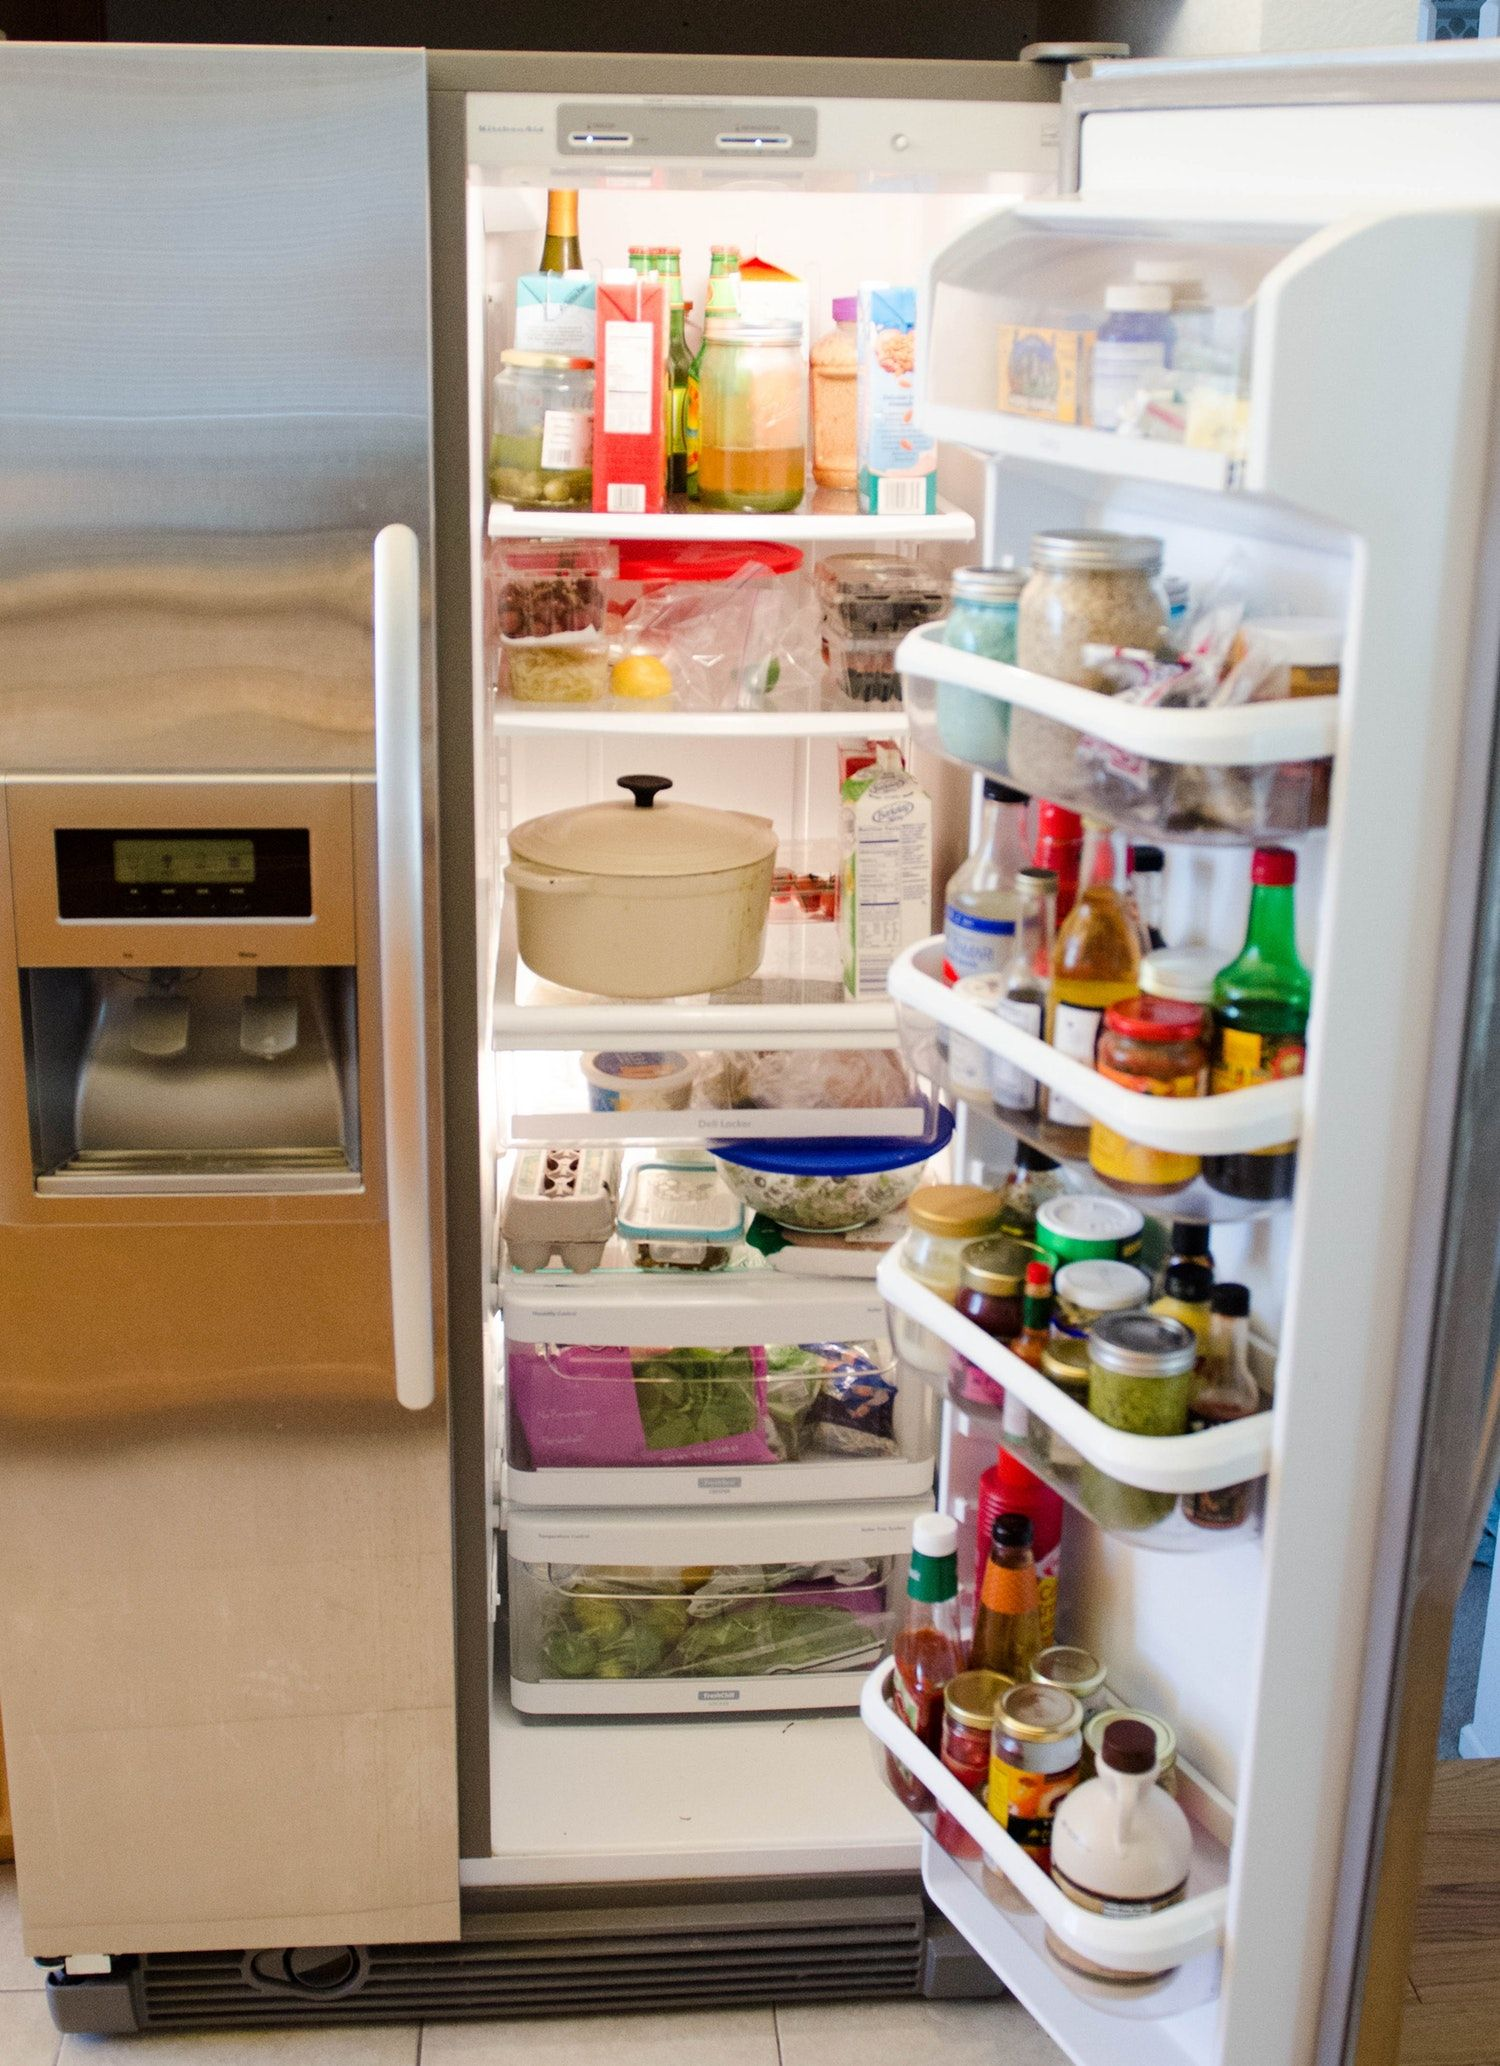 How To Clean The Refrigerator Clean Refrigerator Clean Fridge